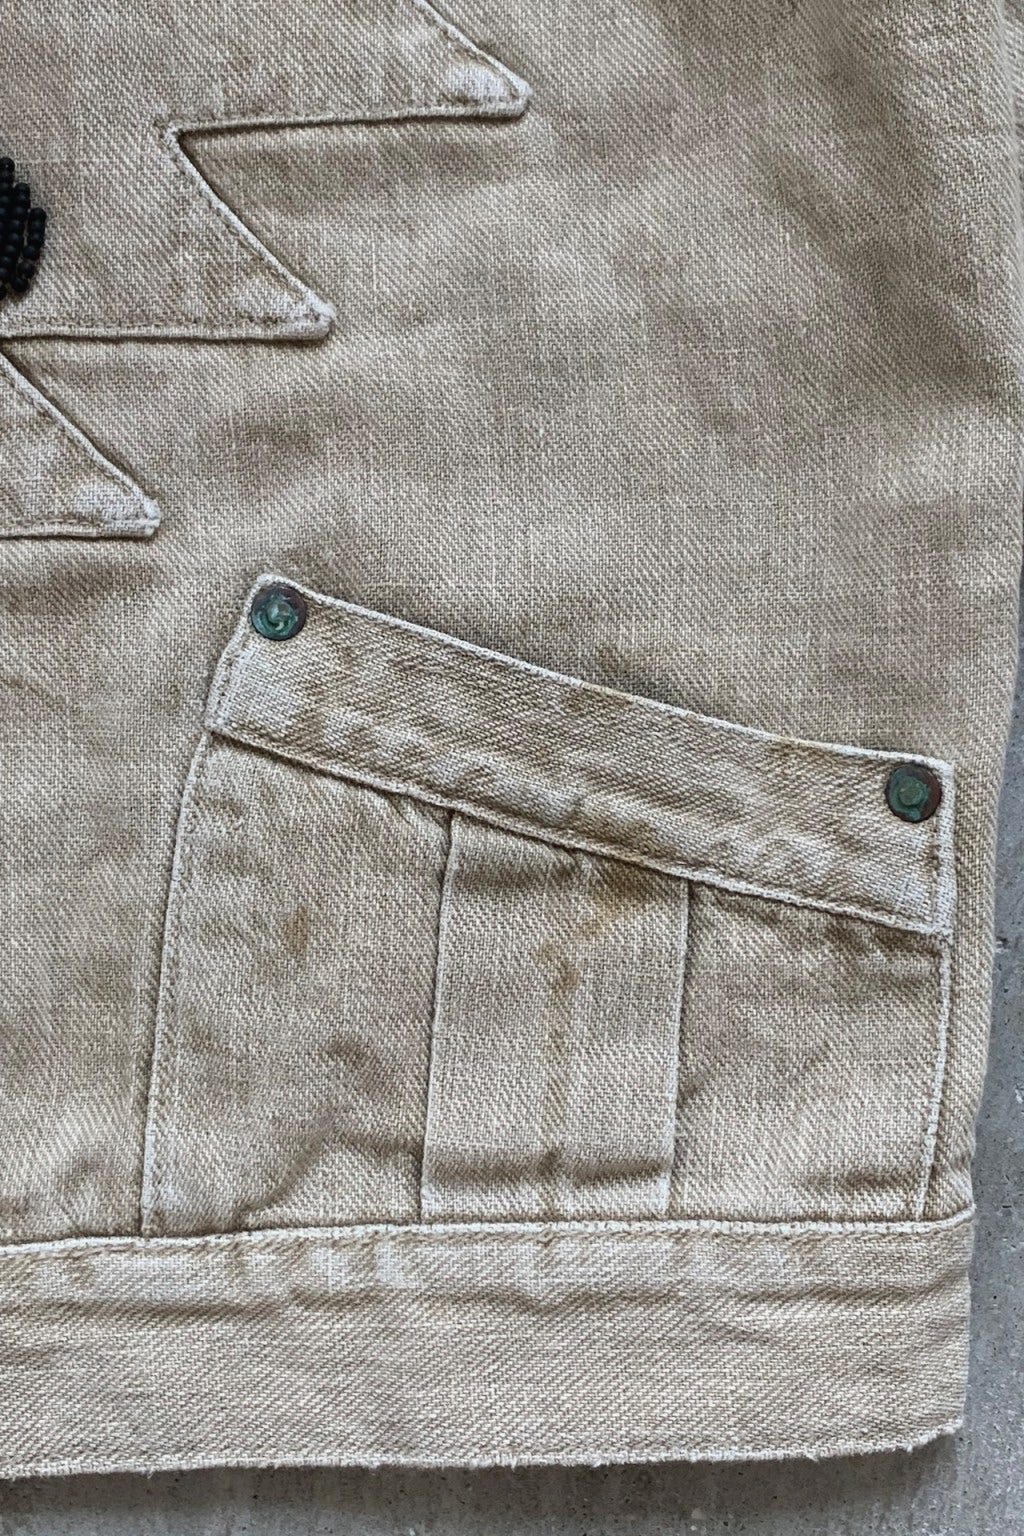 Kapital Heavy Linen Twill STD Thunderbird Jacket ZUNI Remake Beige